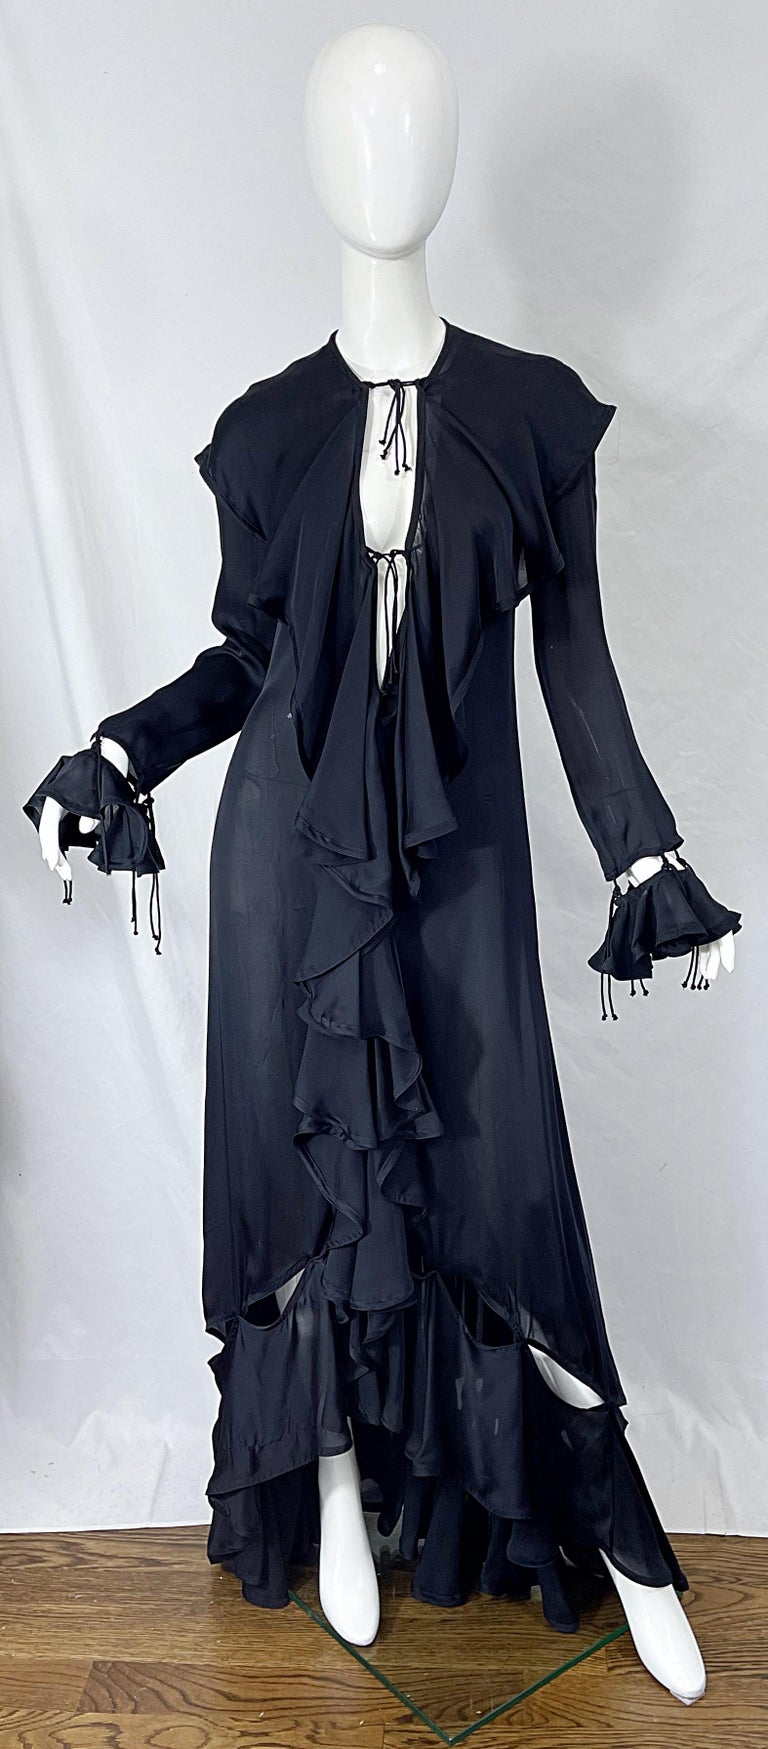 Yves Saint Laurent by Tom Ford Fall 2003 Runway Black Silk Chiffon Gown Size 38 For Sale 12